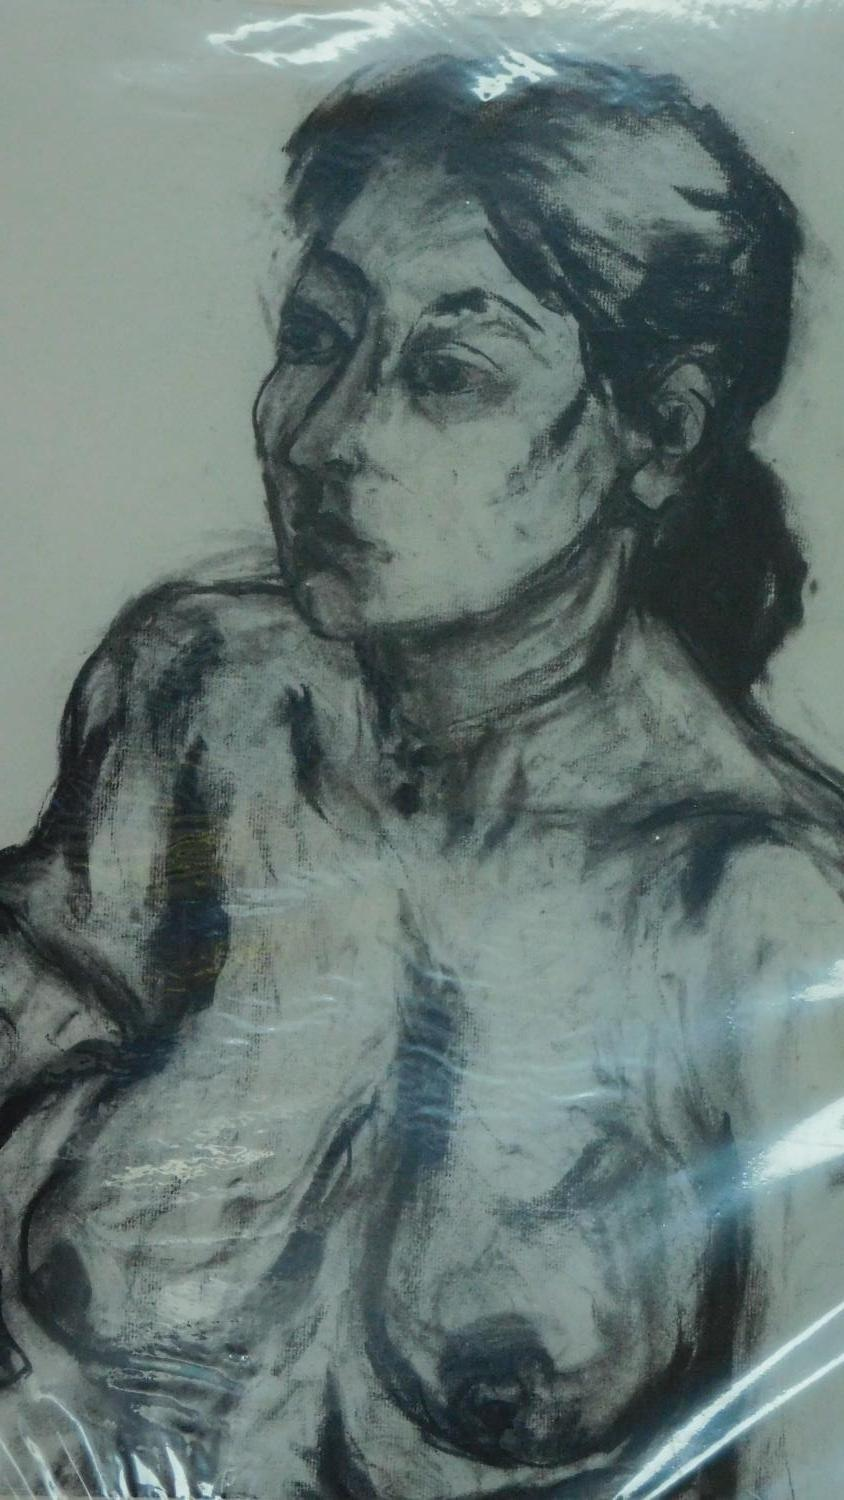 Two unframed mounted charcoal sketches, nude studies, monogrammed G H - 90x70 (largest) - Image 2 of 4